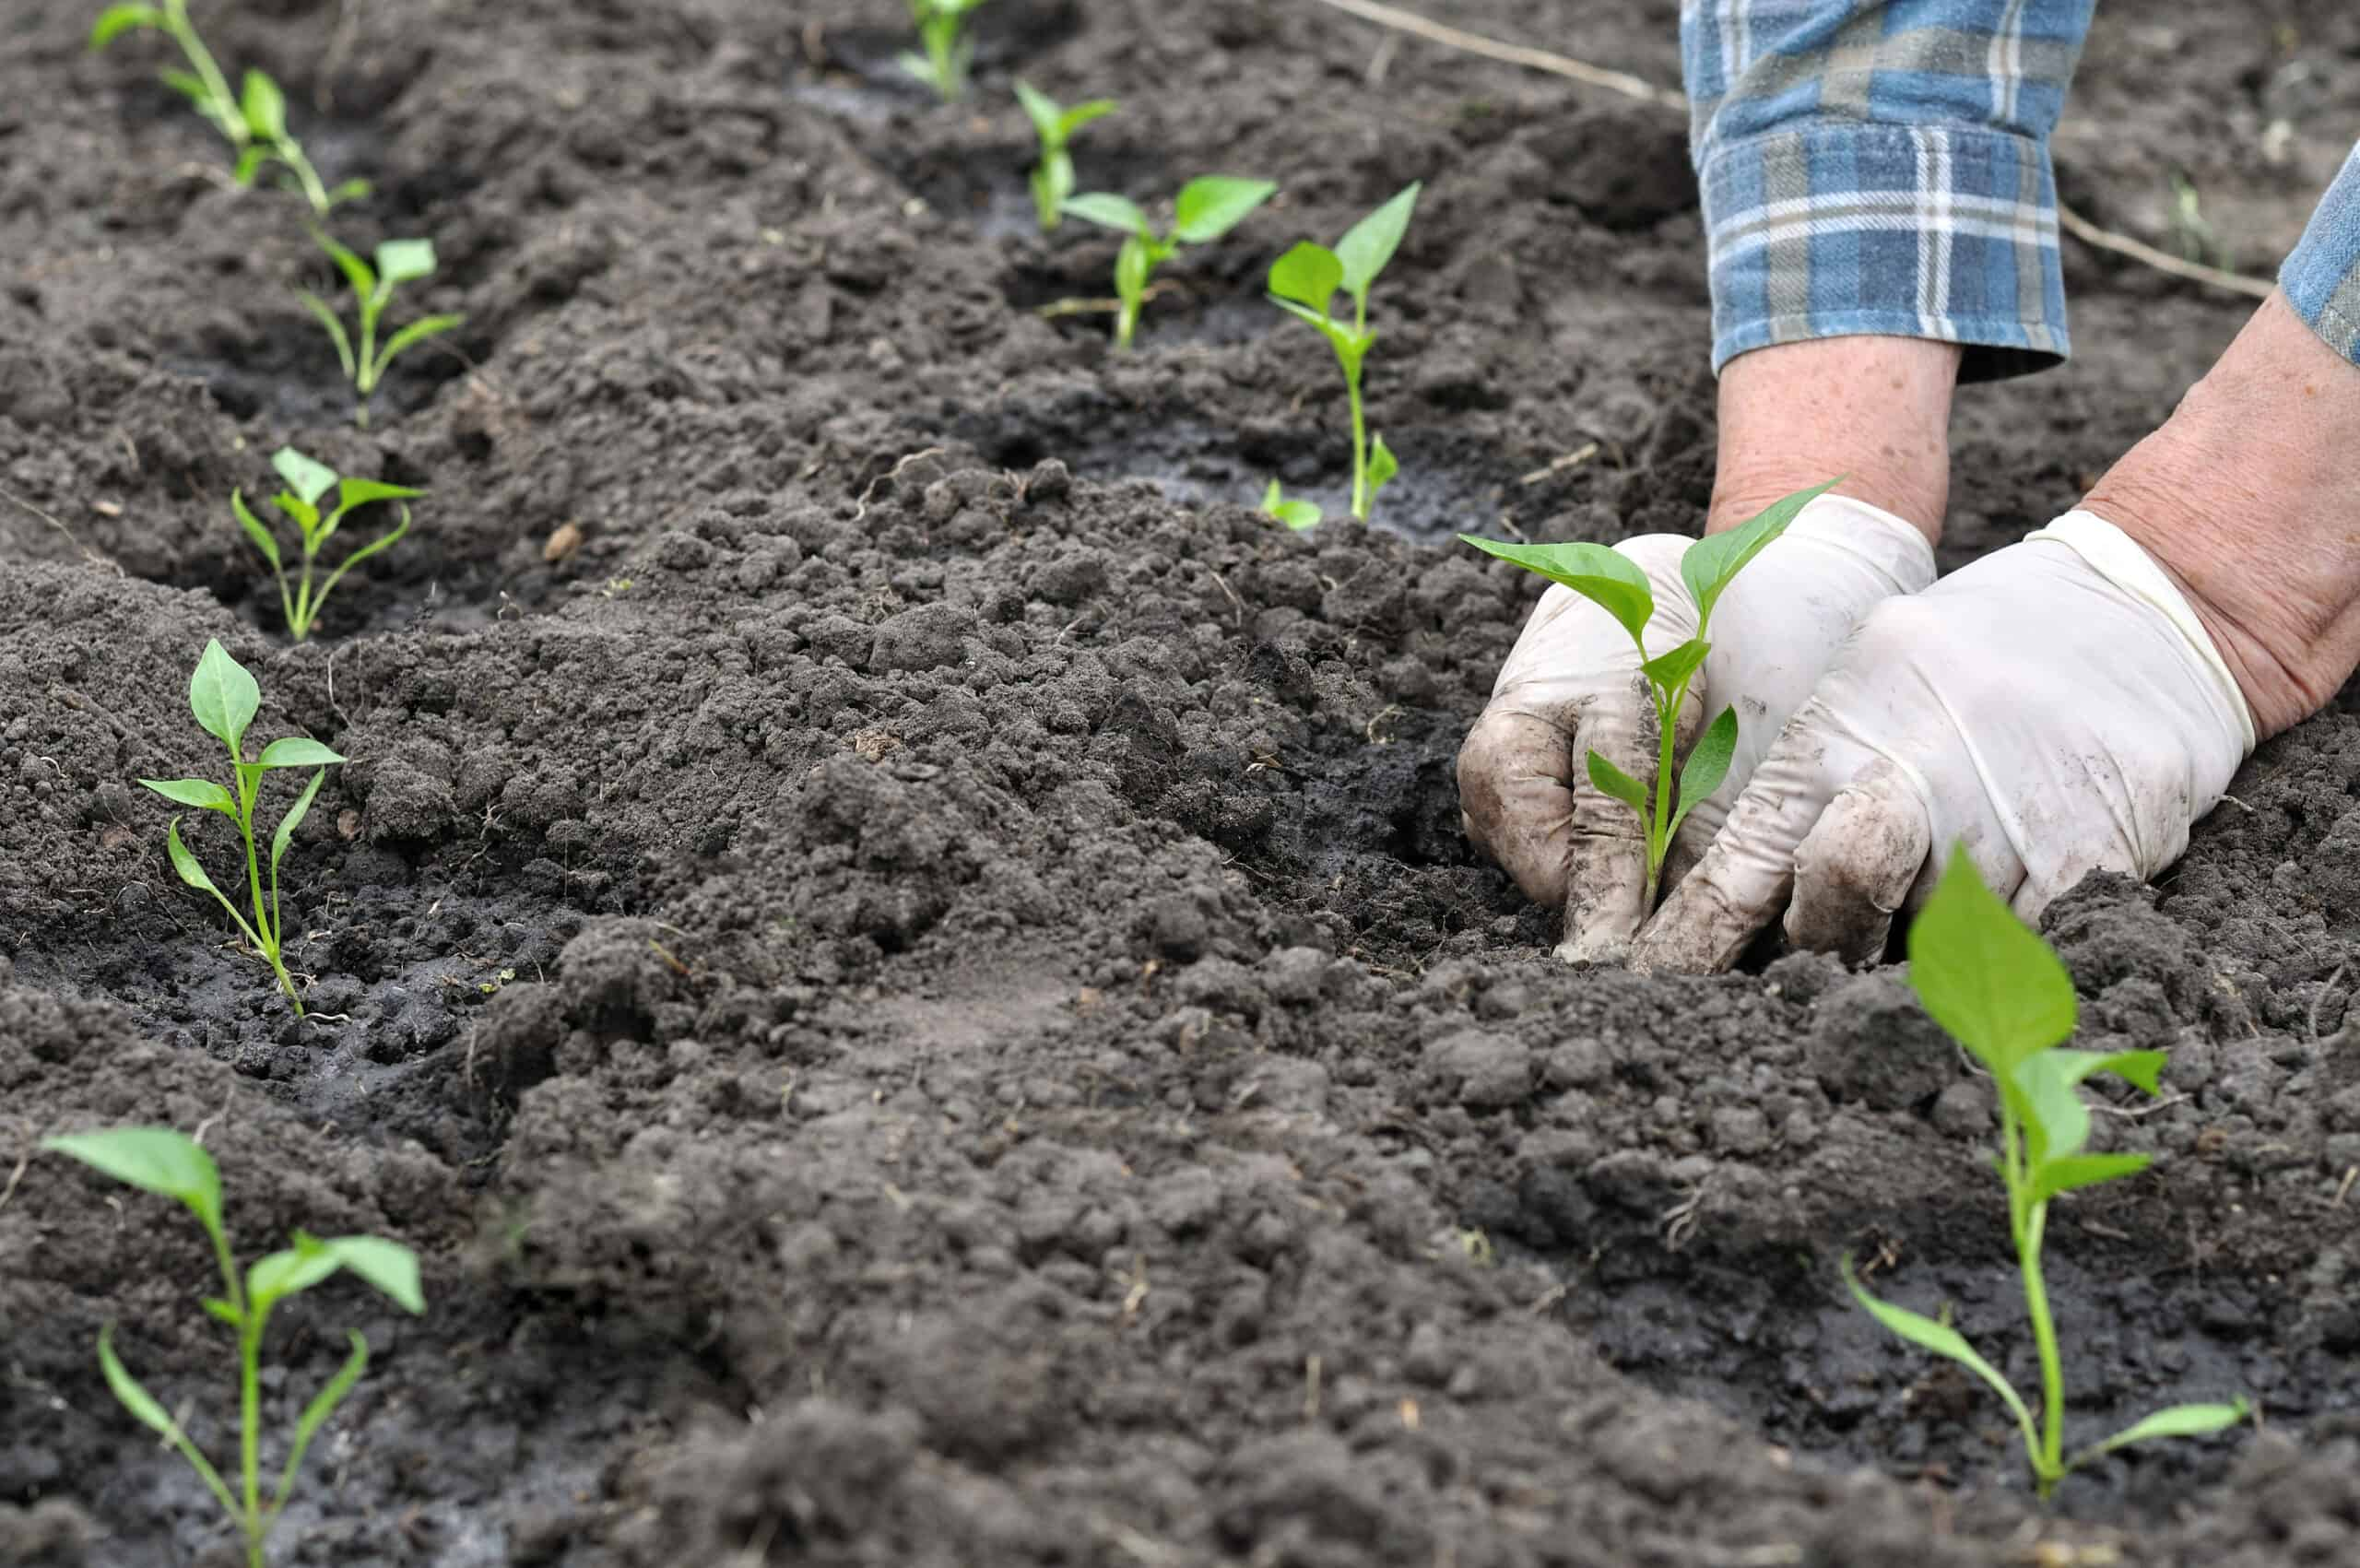 Planting peppers in rows